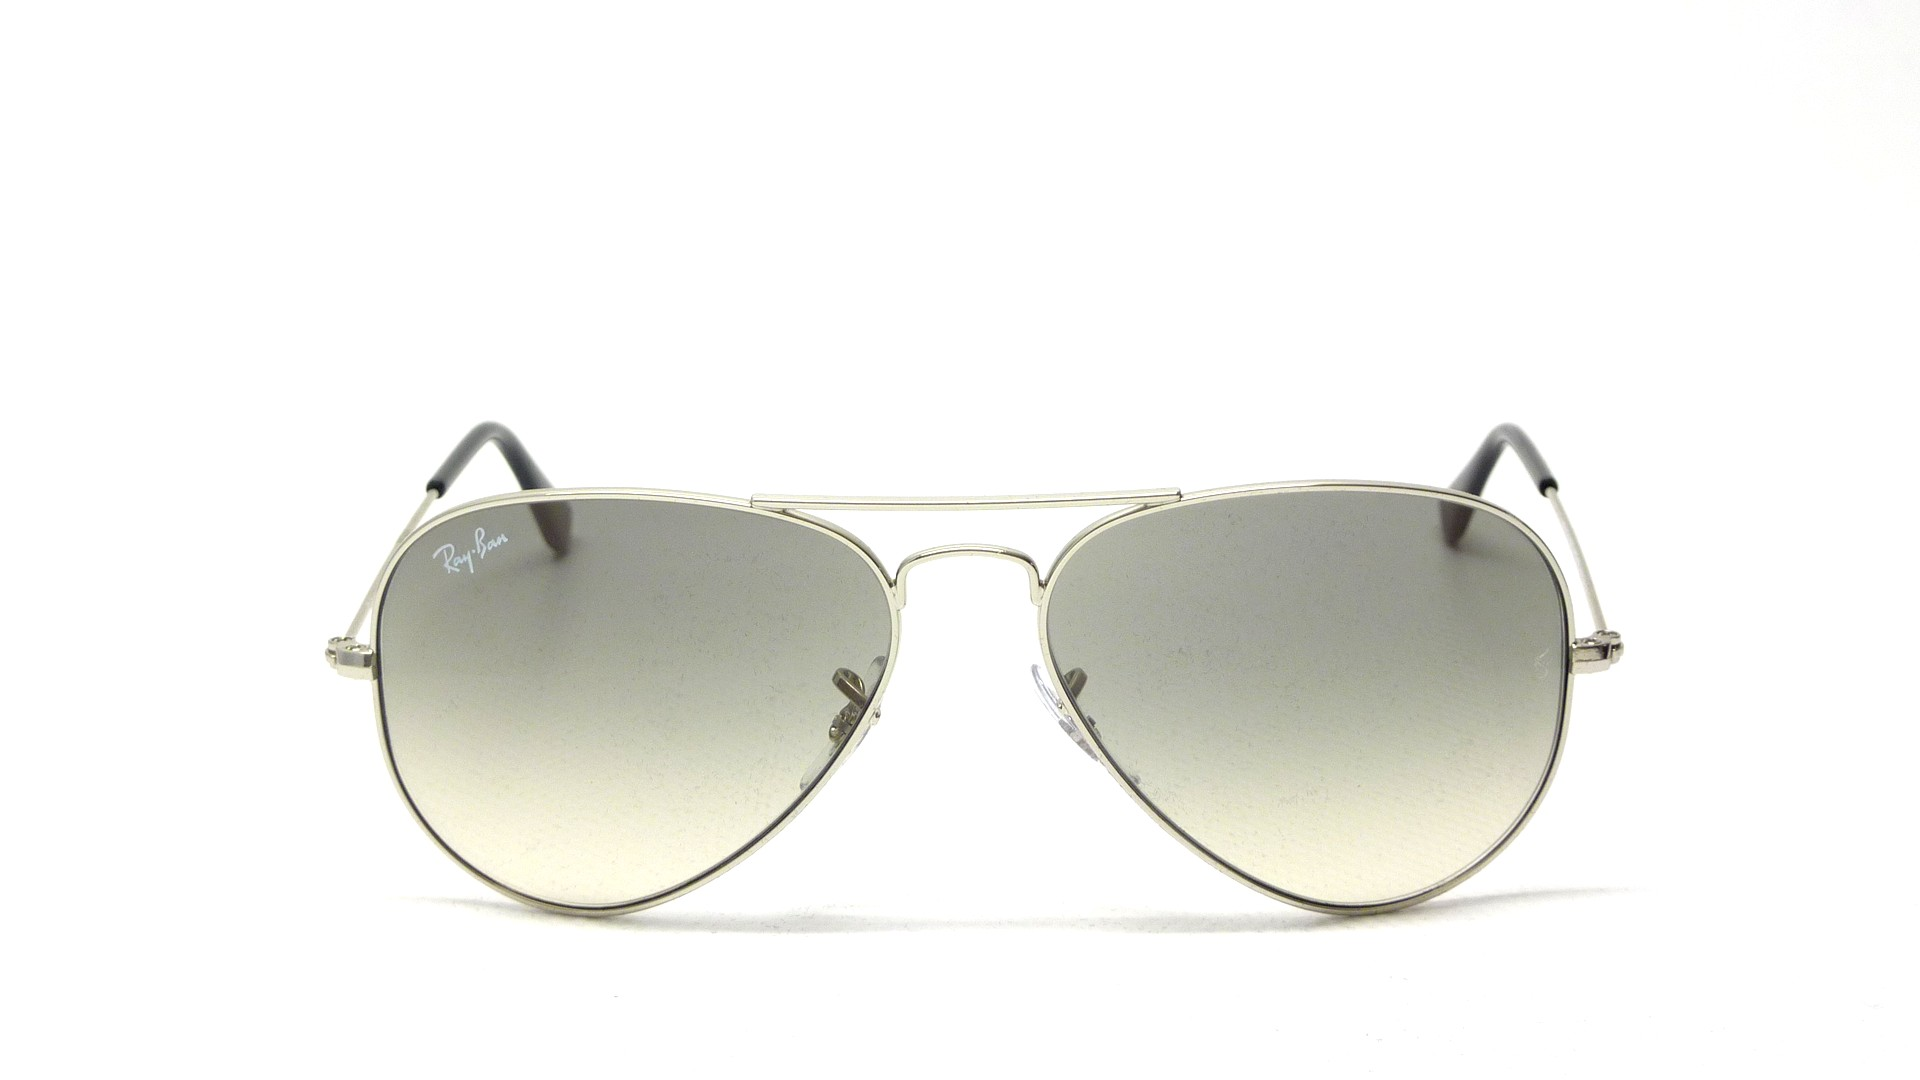 7bd64c1153f Ray-Ban Aviator Large Metal Silver RB3025 003 32 58-14